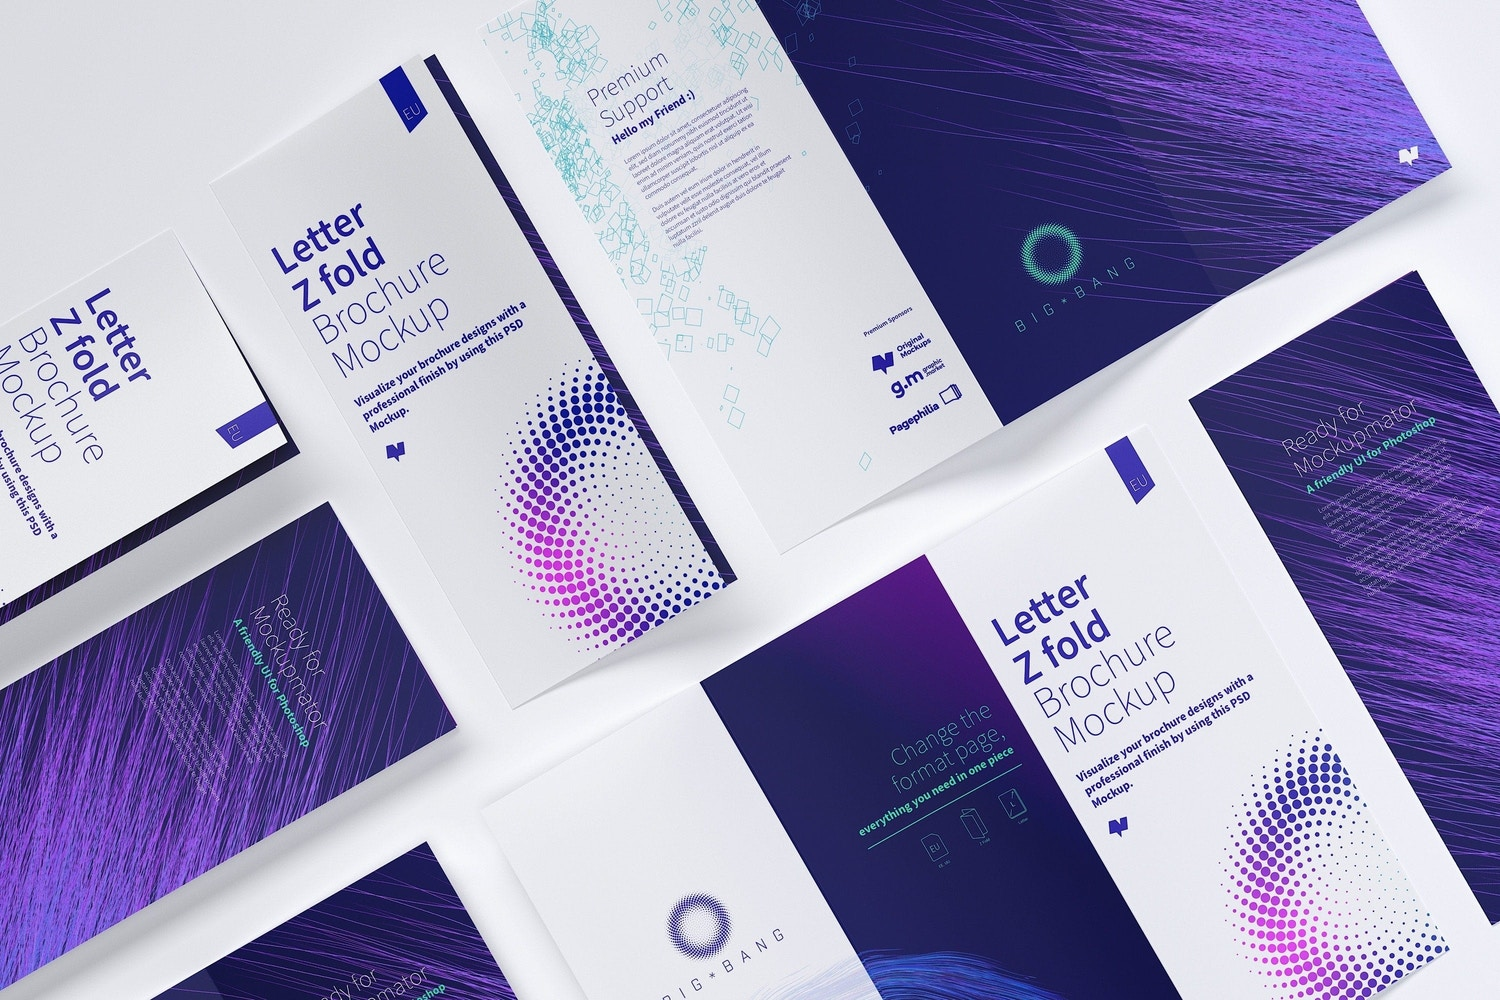 Composition with different views of a Z Fold Brochure.